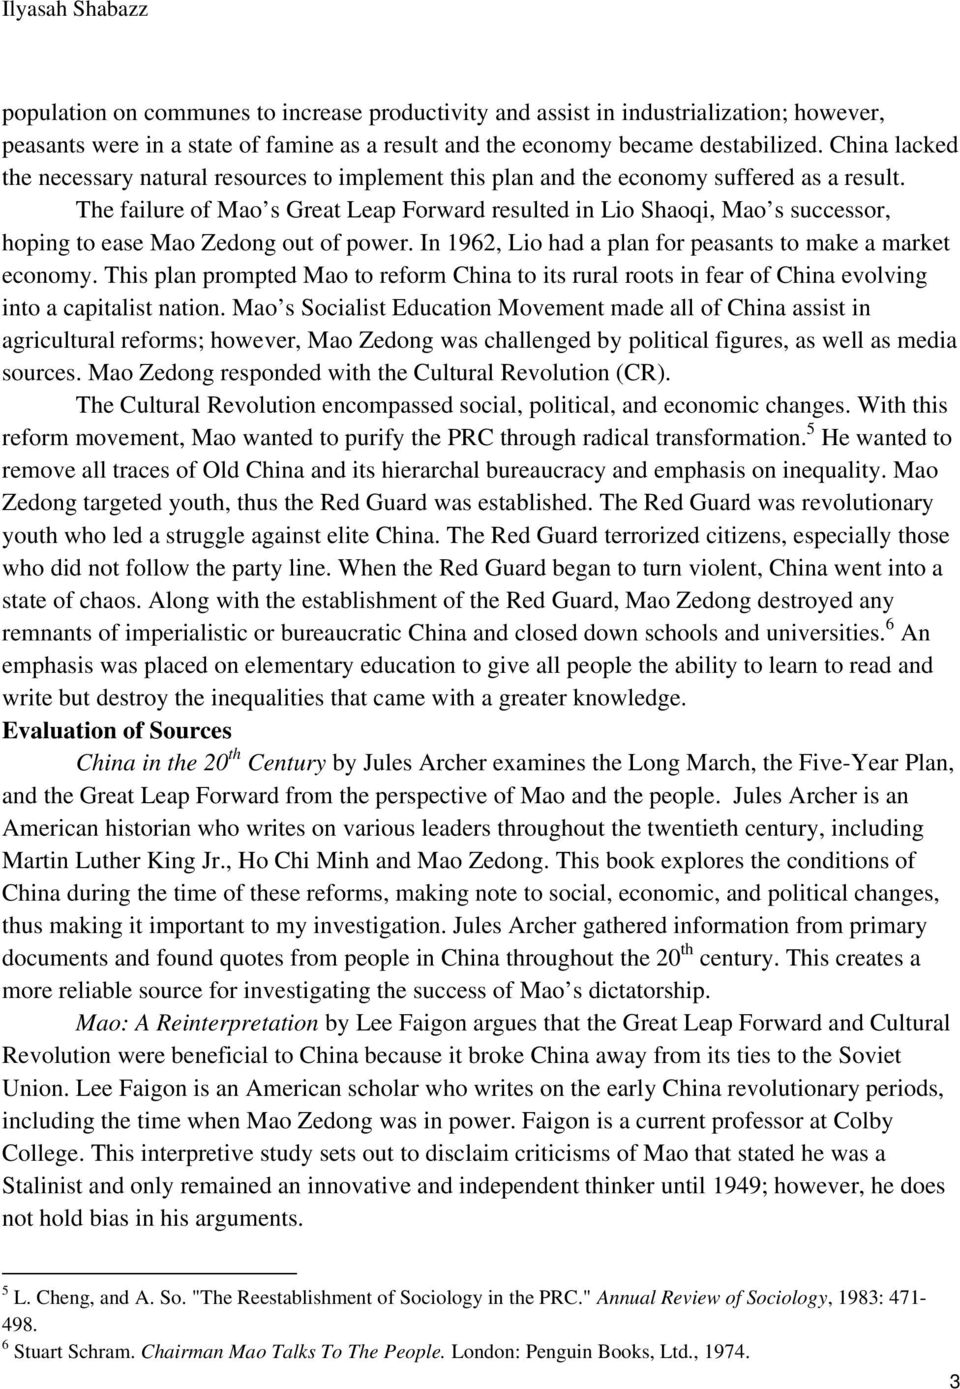 The failure of Mao s Great Leap Forward resulted in Lio Shaoqi, Mao s successor, hoping to ease Mao Zedong out of power. In 1962, Lio had a plan for peasants to make a market economy.